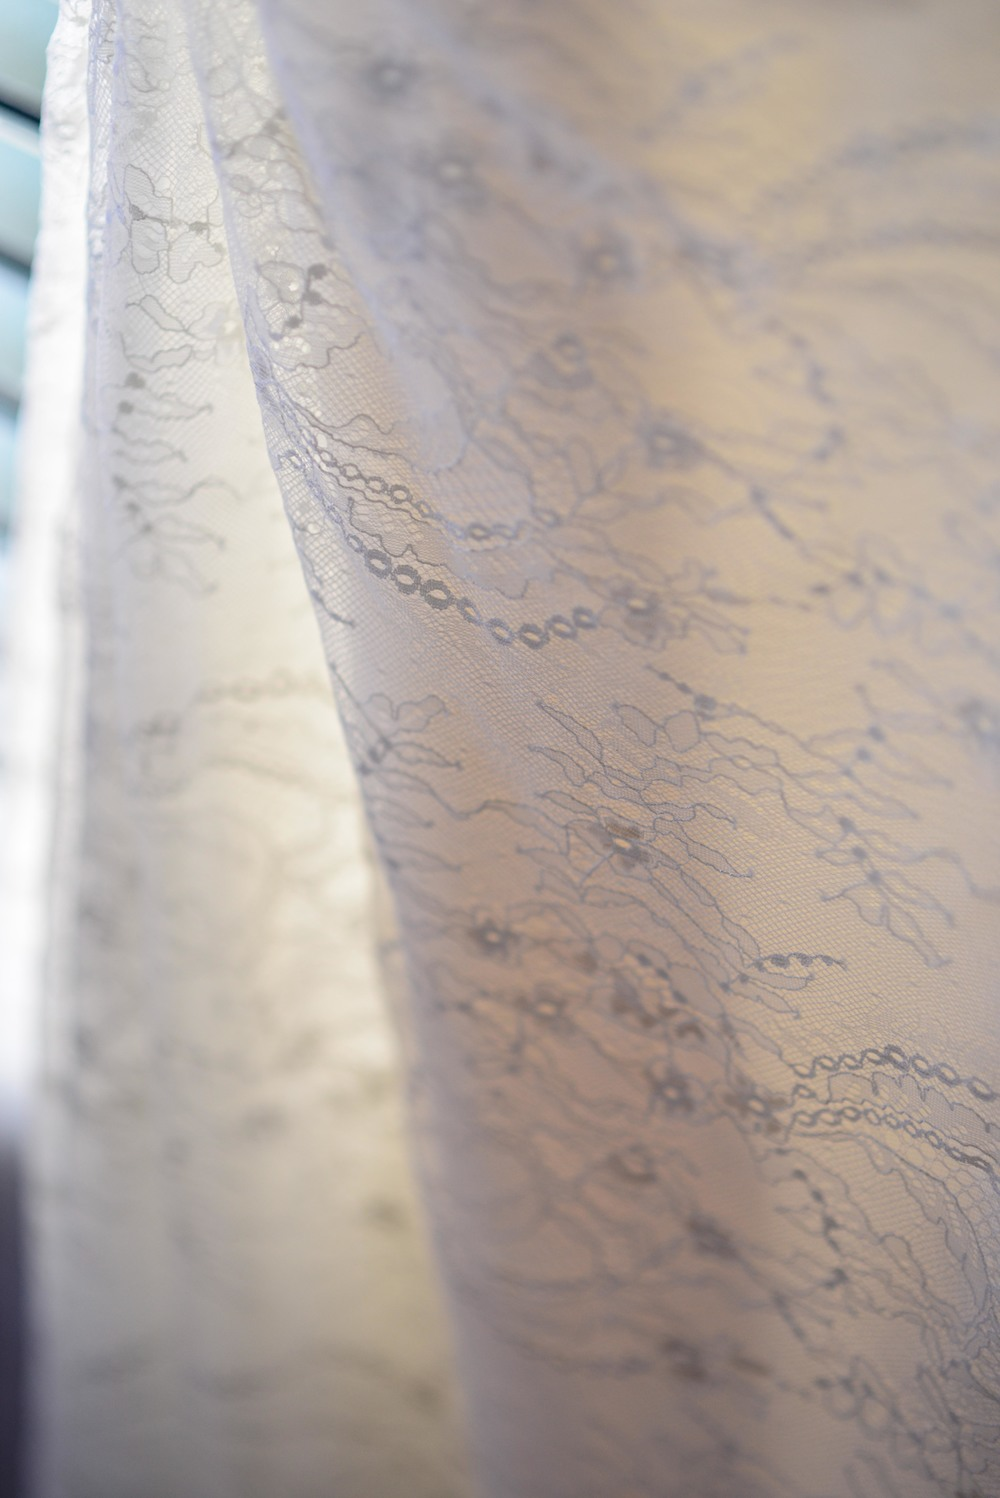 Ivory Lace Detailing on Sarah's Vera Wang wedding gown.